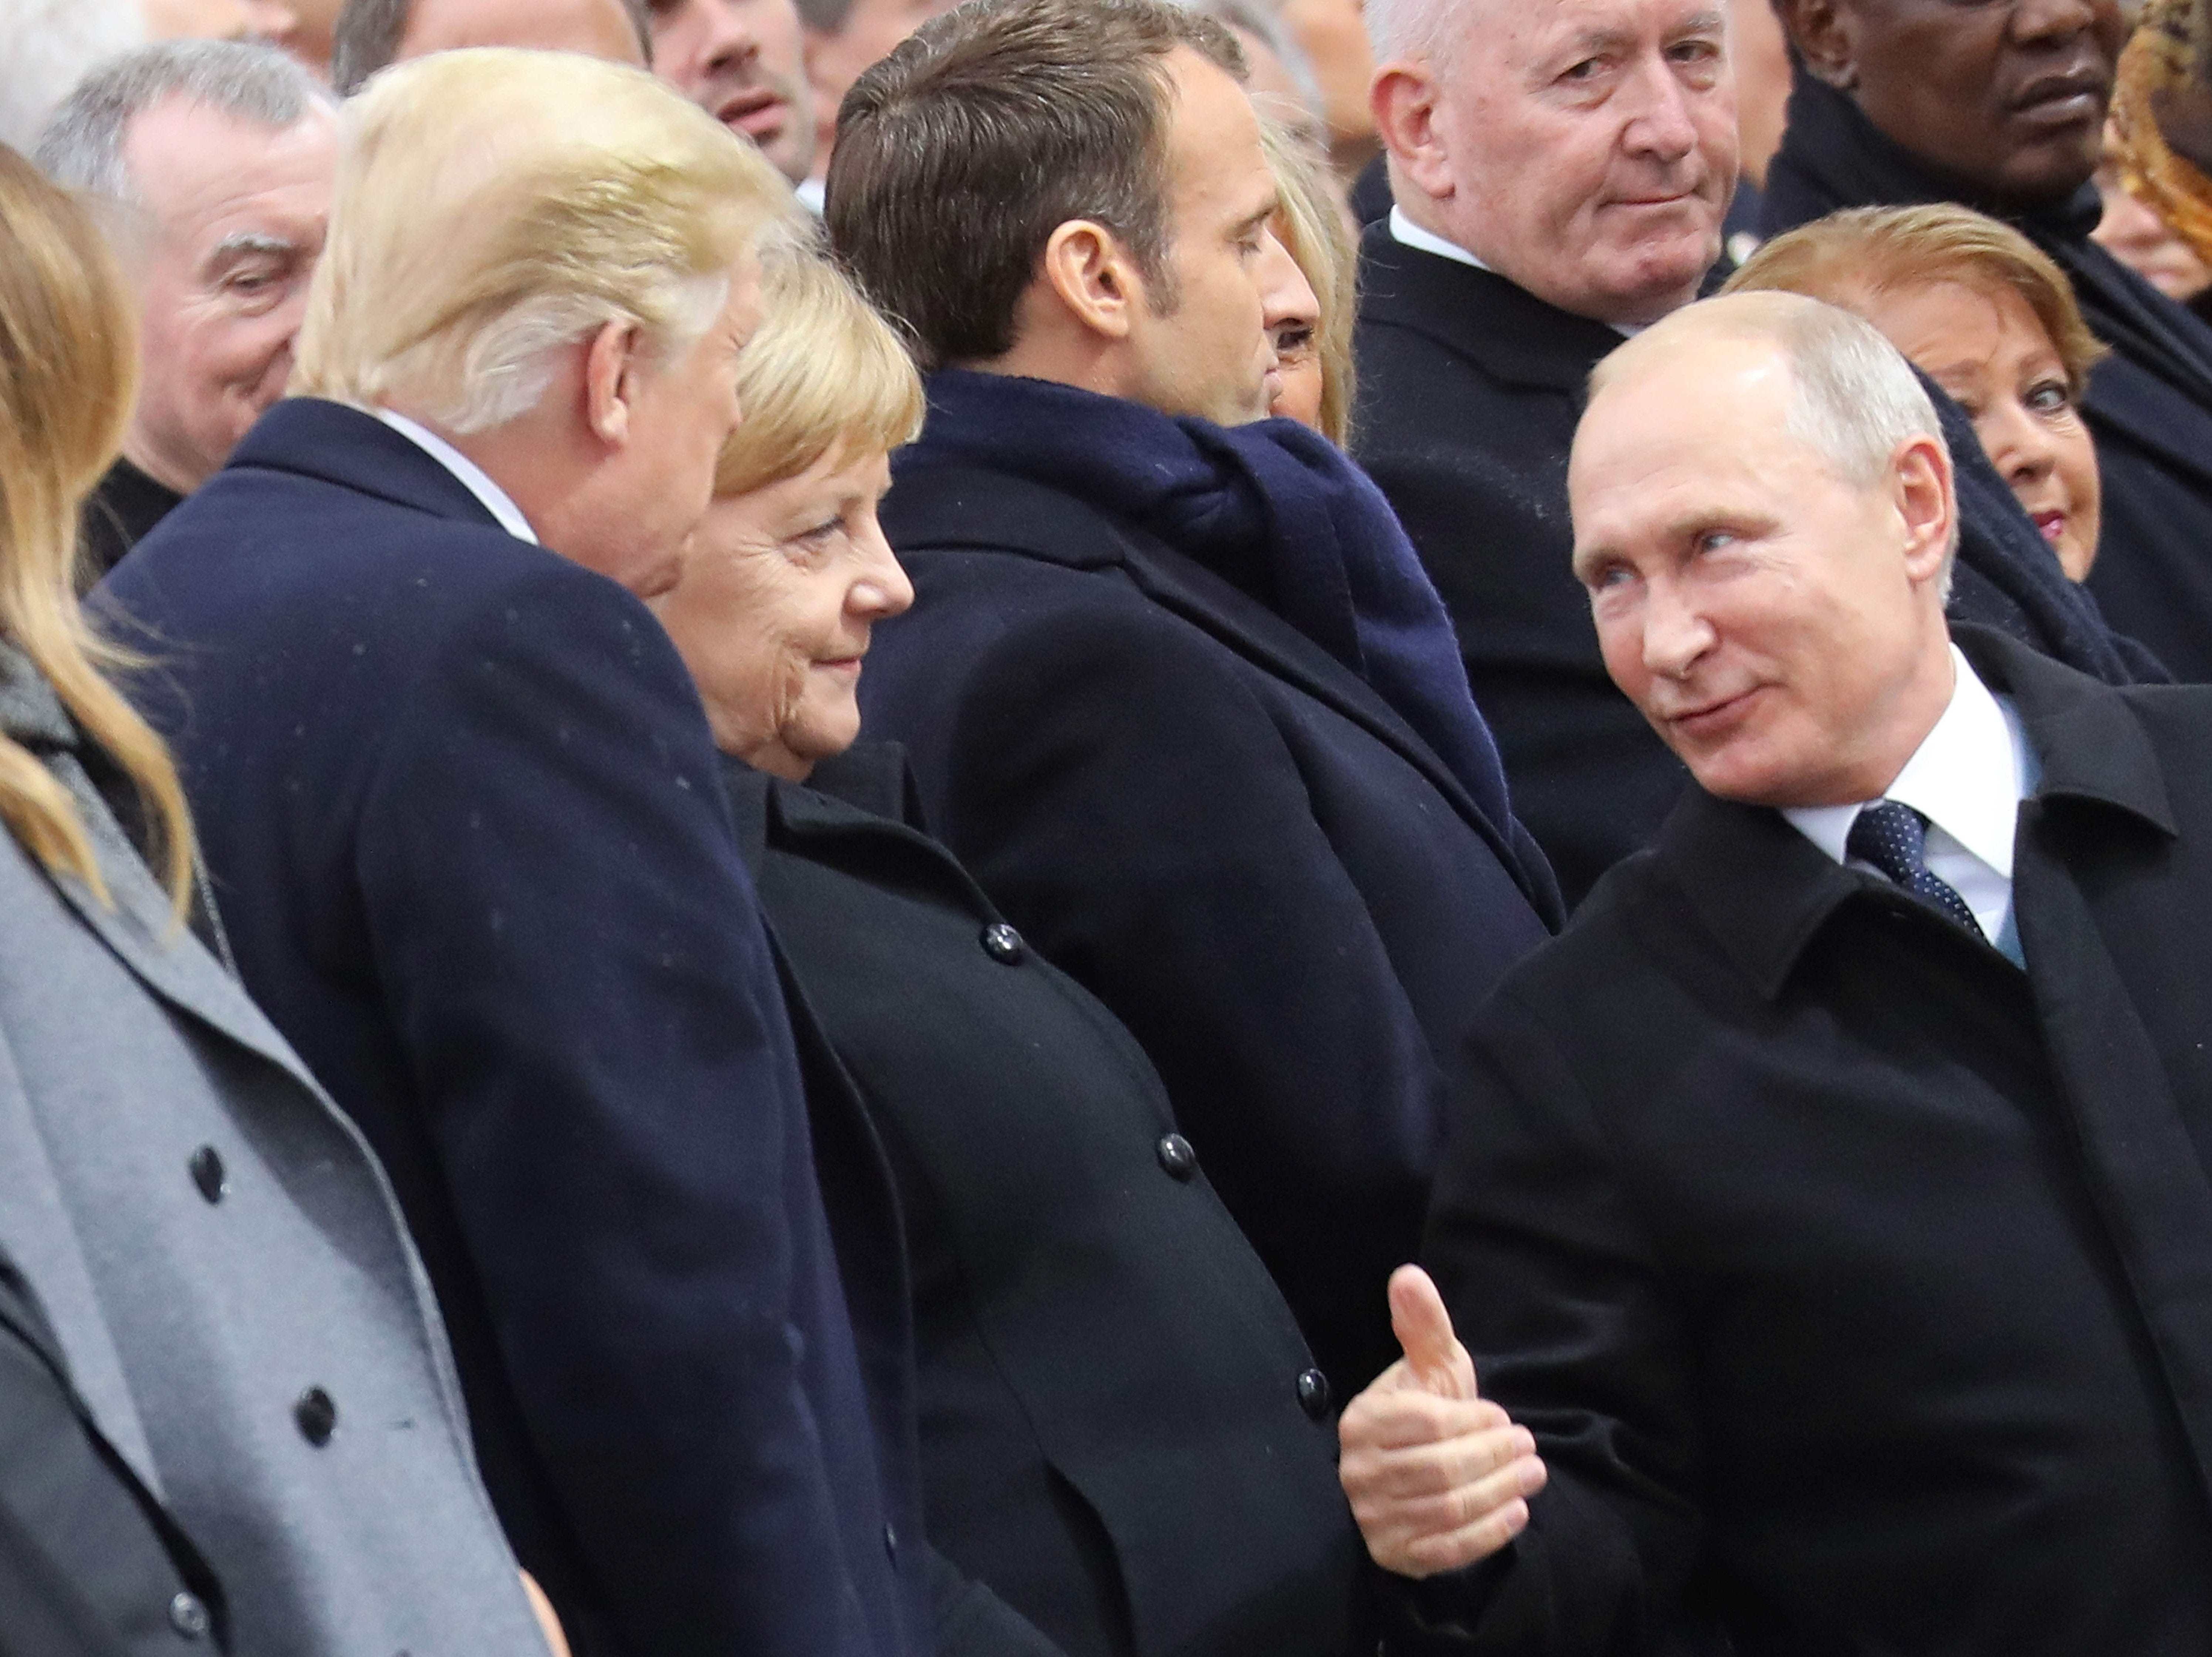 Russian President Vladimir Putin, right, talks with German Chancellor Angela Merkel, center,  and US President Donald Trump as they attend a ceremony at the Arc de Triomphe in Paris on Nov. 11, 2018 as part of commemorations marking the 100th anniversary of the November 11, 1918 armistice, ending World War I.